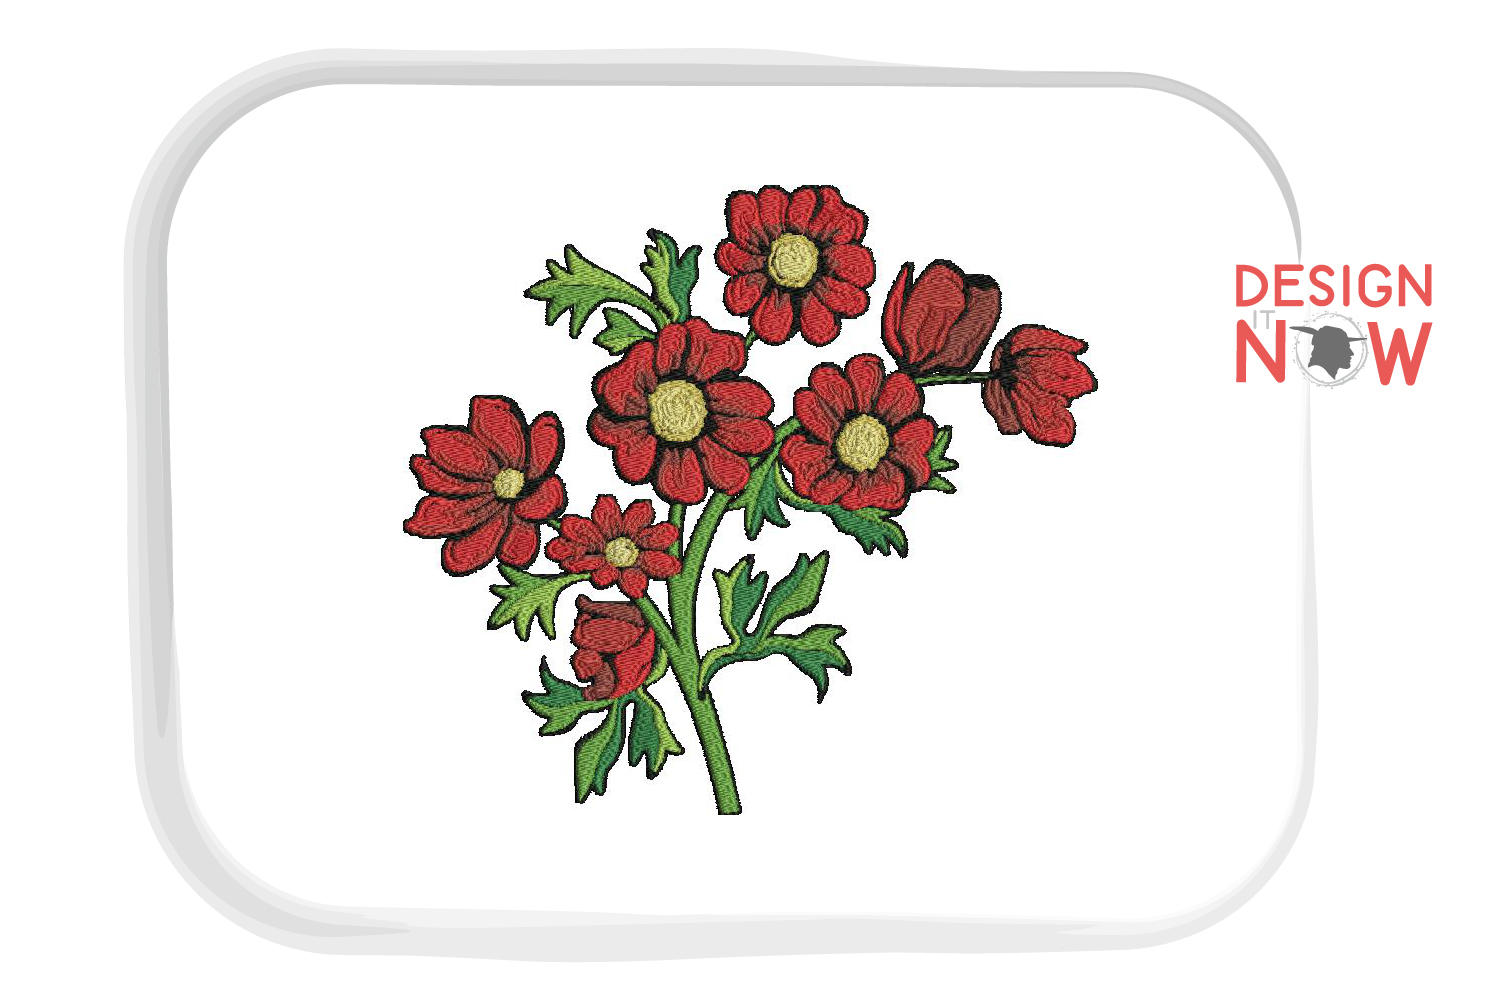 Botanical Art, Flower Embroidery Design, Plant Embroidery example image 2